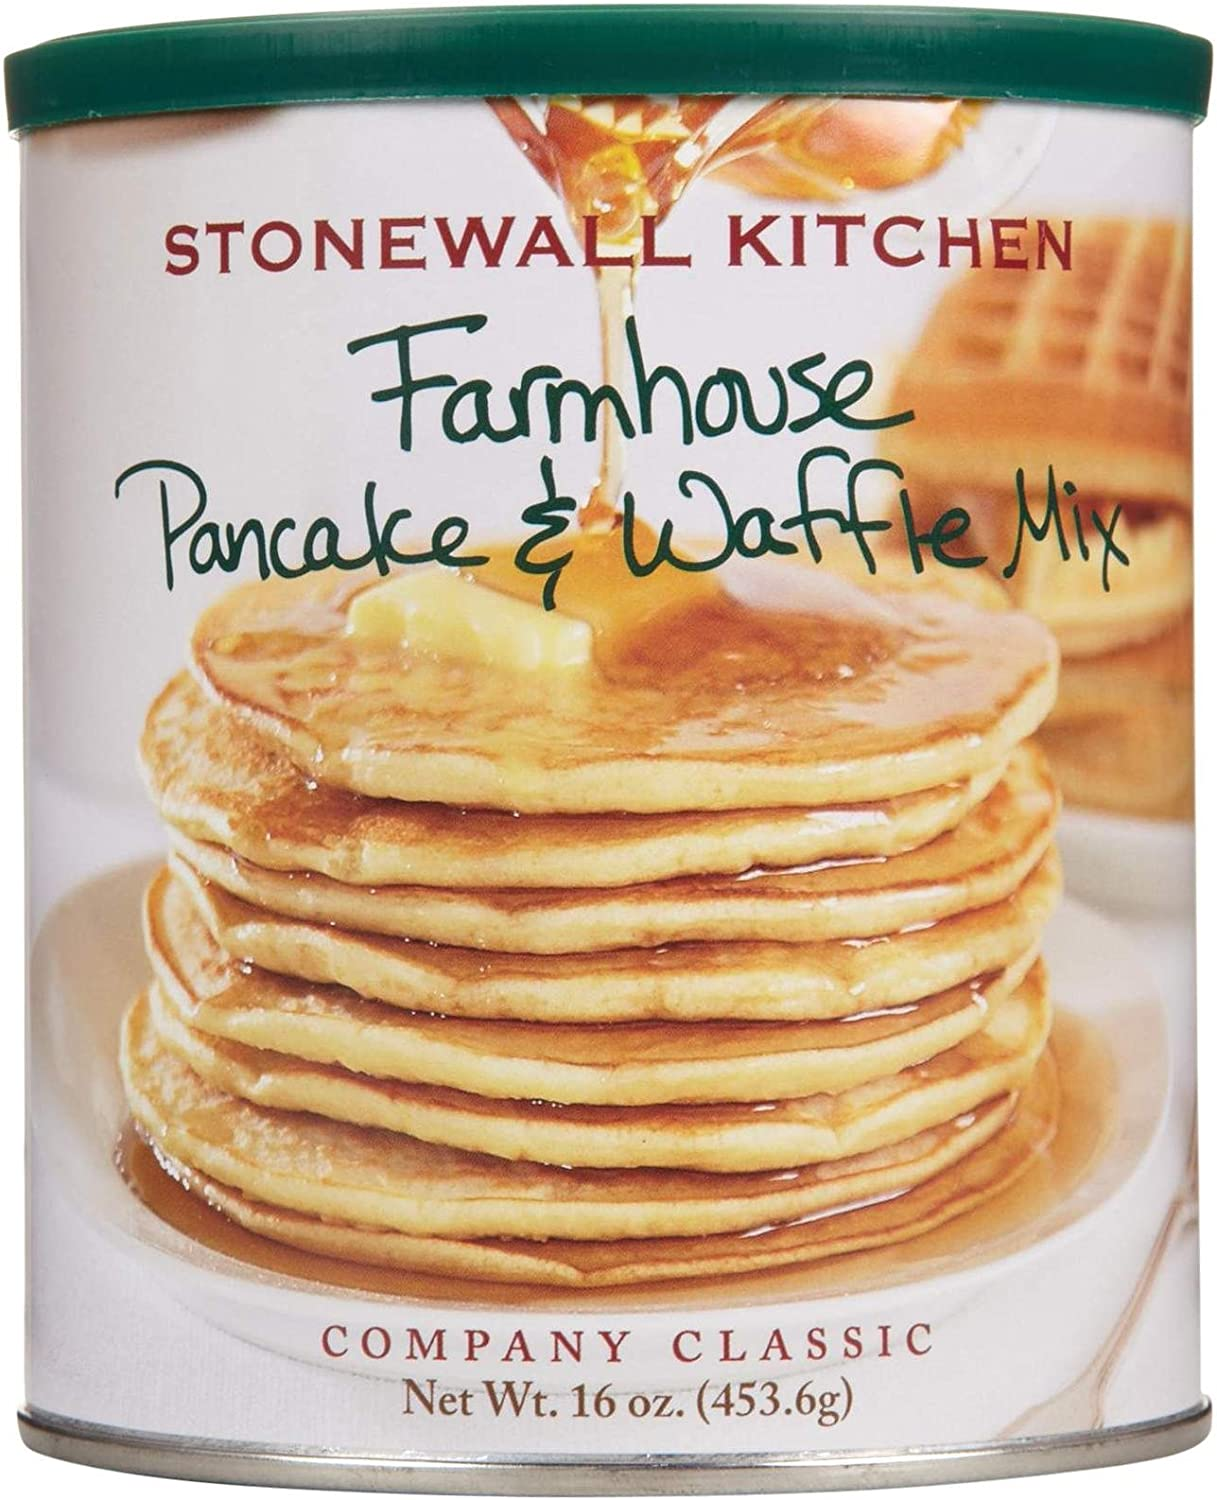 Stonewall Kitchen Farmhouse Pancake and Waffle Mix, 16 ounces